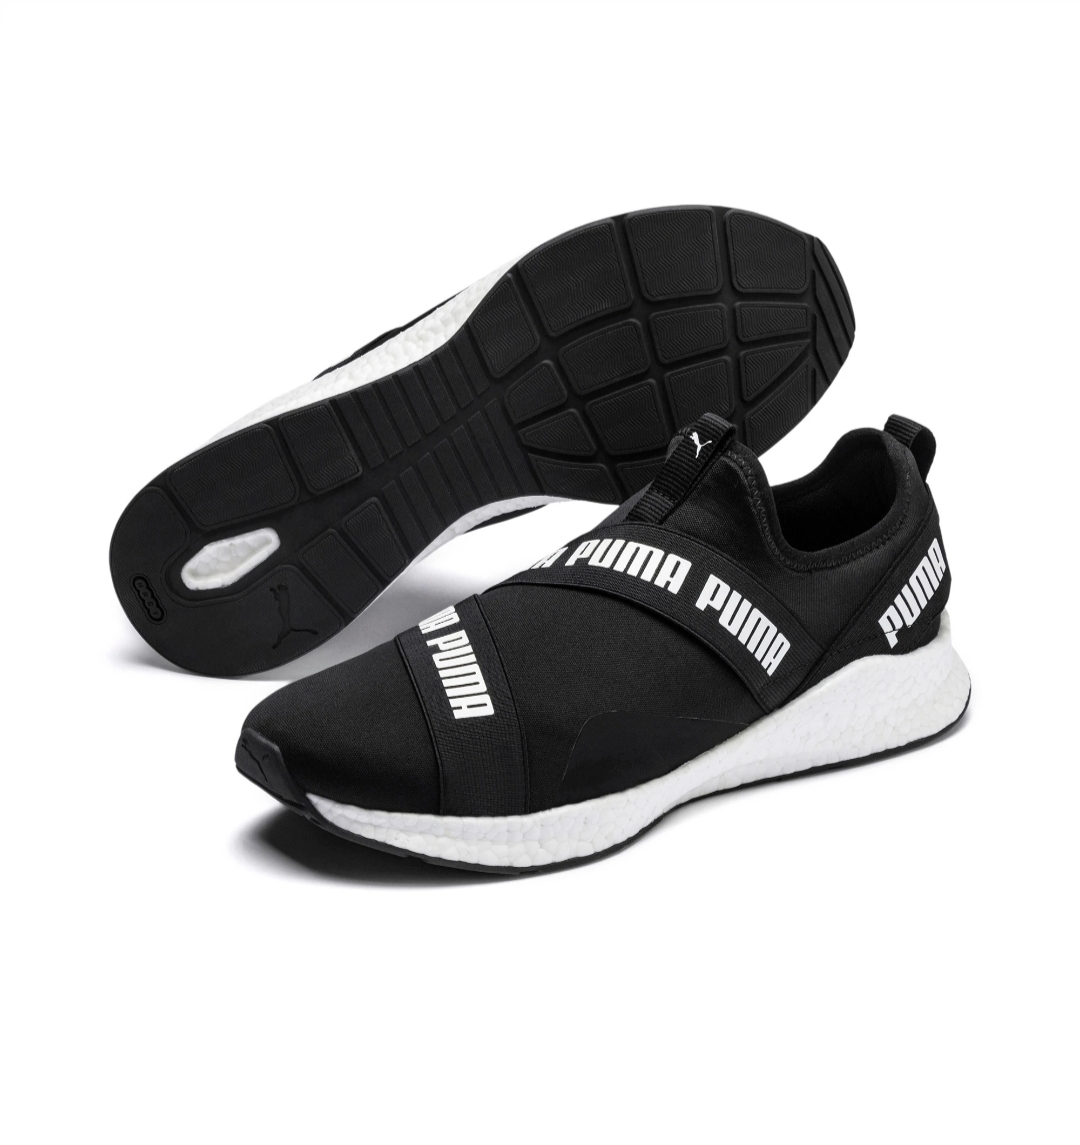 NRGY Star Slip-On Puma Black-Puma White